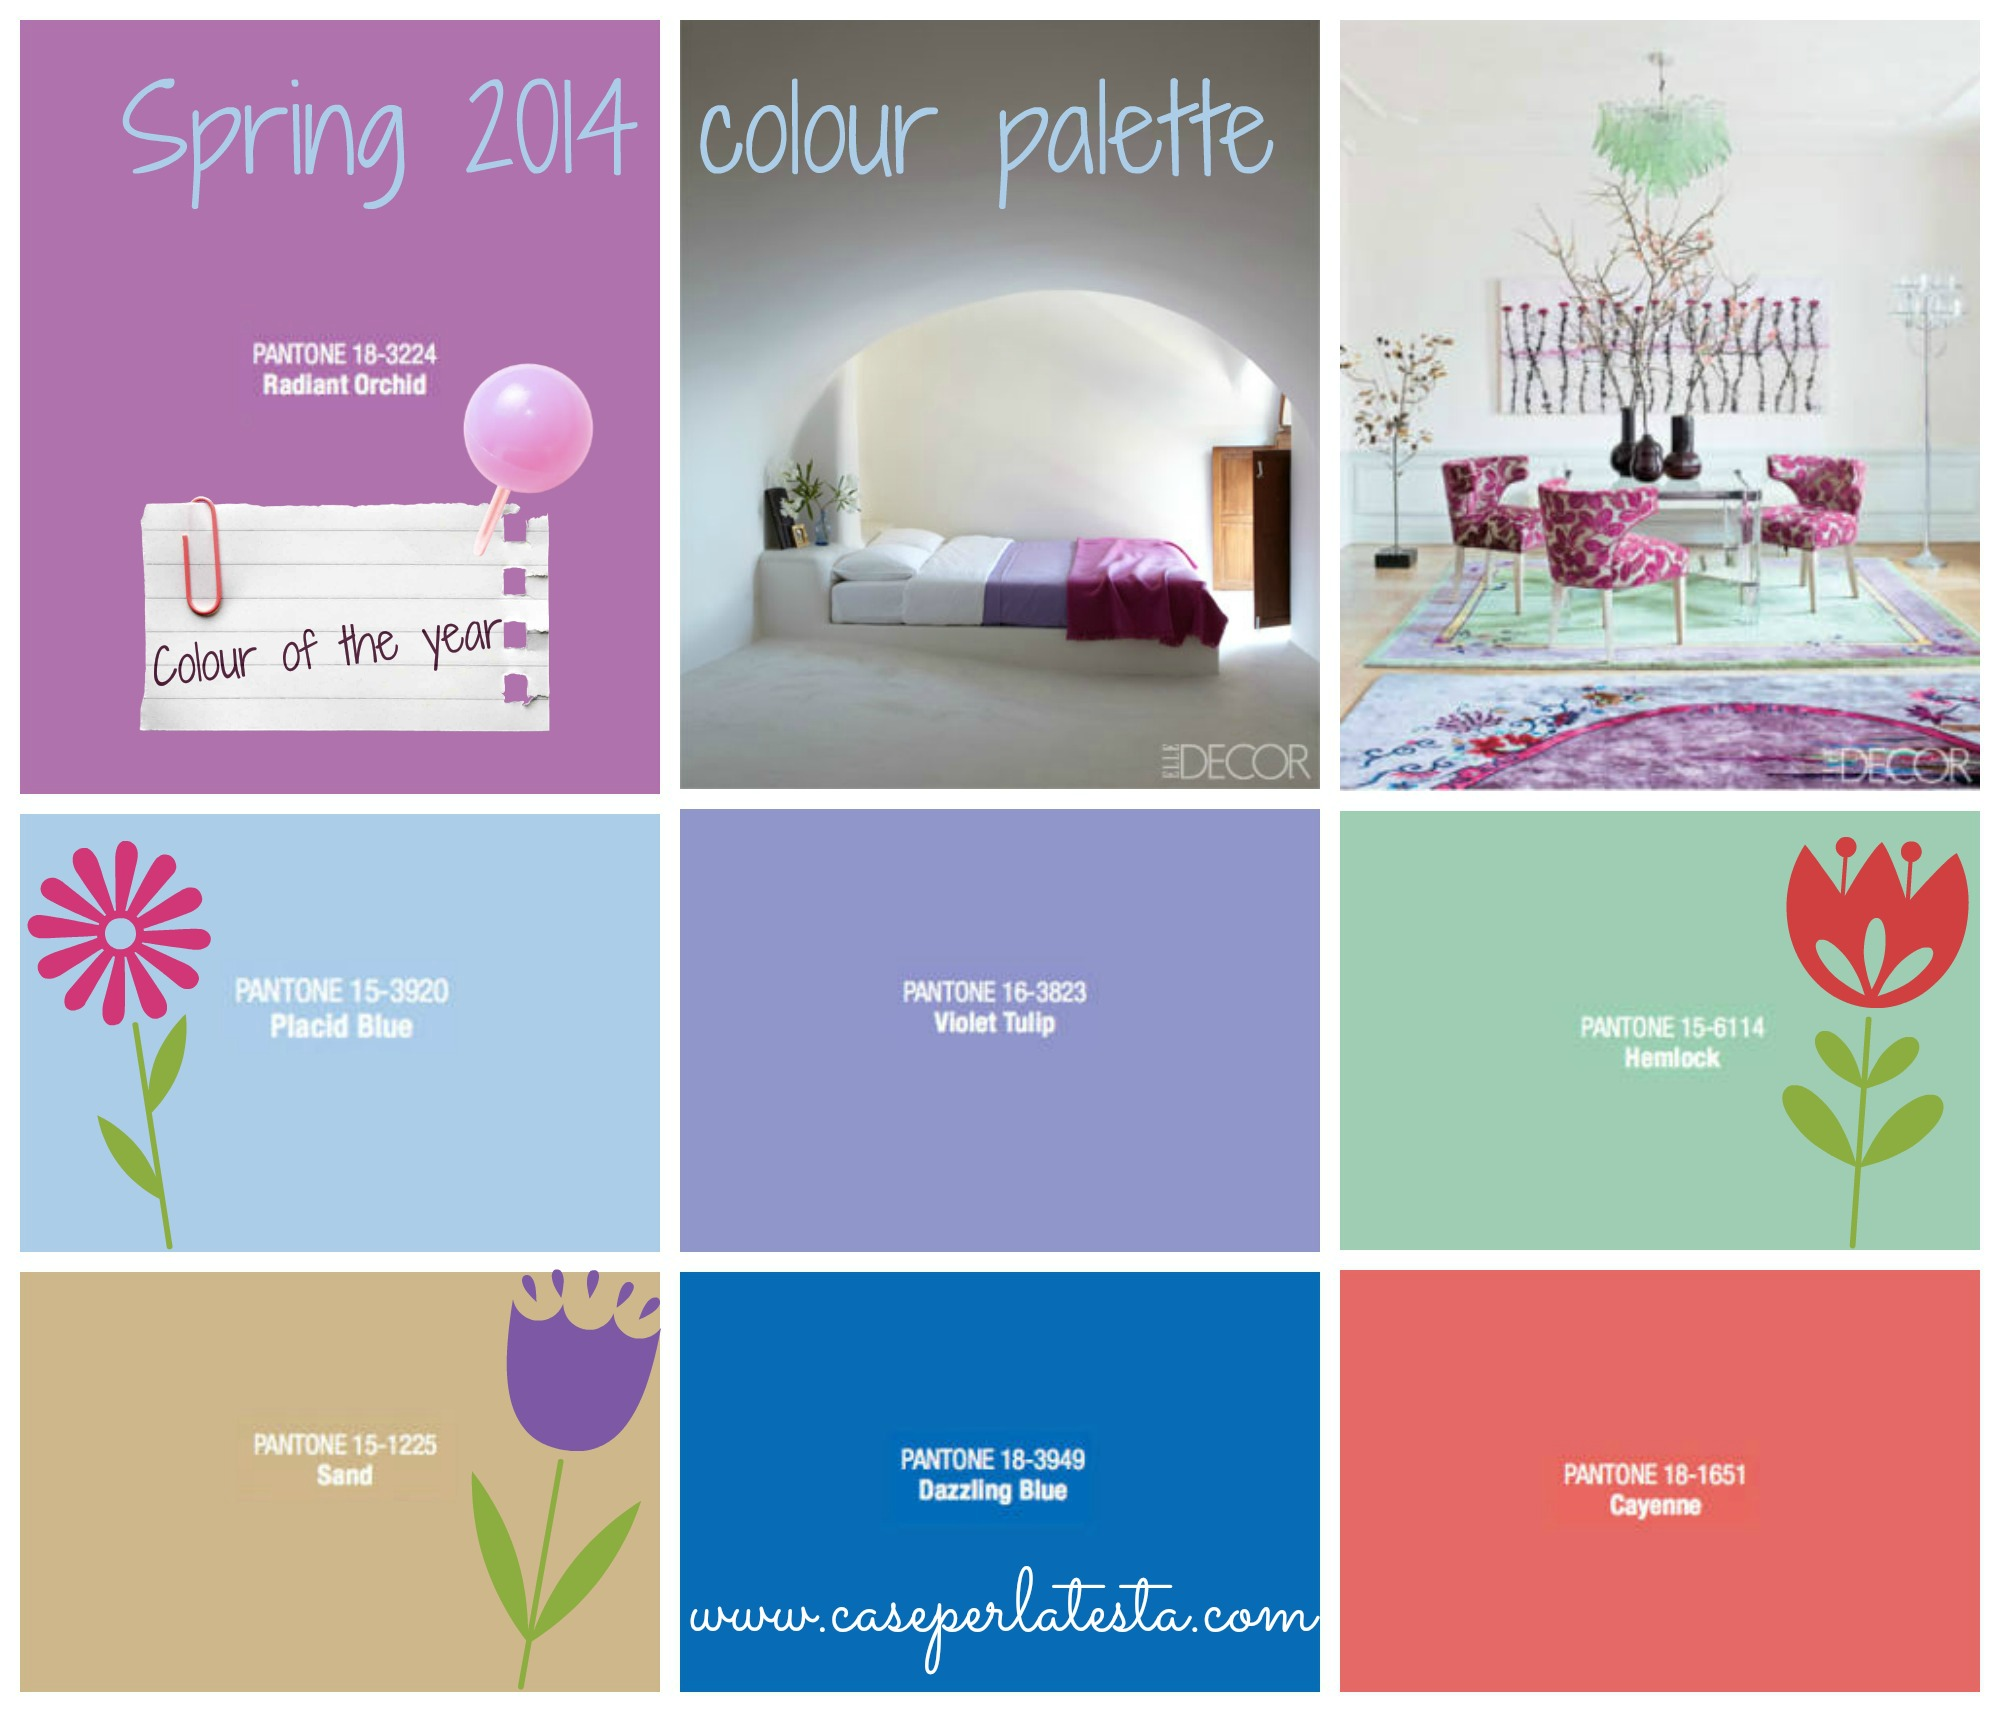 Get the look – Colori primavera 2014 *Spring 2014 colour palette